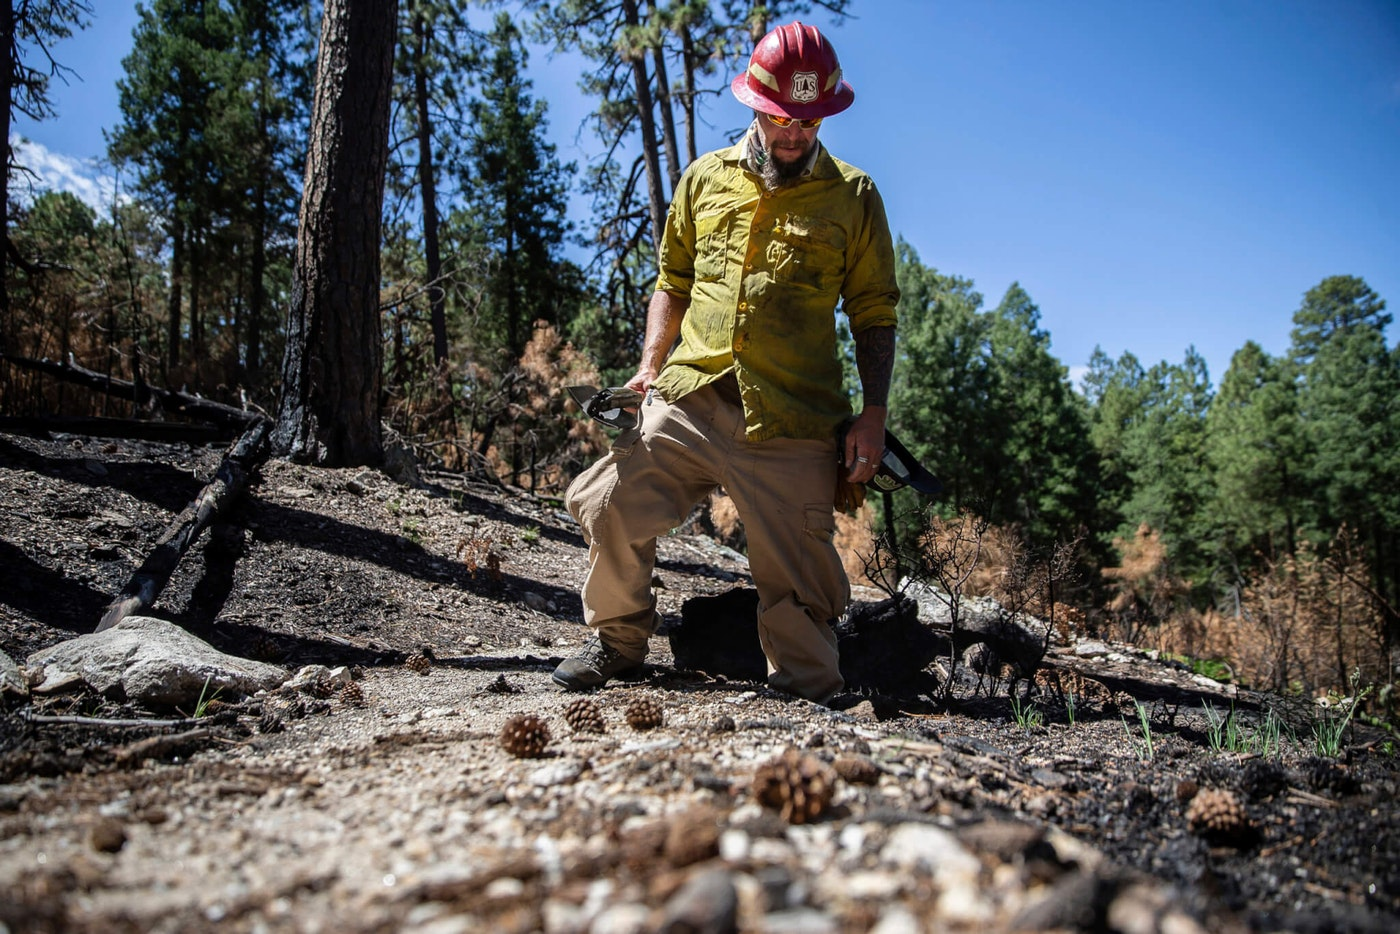 Gregg Sasek, dispersed recreation manager for the Coronado National Forest Santa Catalina Ranger District, demonstrates how ground along the Palisade Trail has been burnt out making it easy for hikers to sink a leg into the soil, on Wednesday, Aug. 12, 2020, near Tucson, Ariz. Various dangers are still being accessed throughout the Coronado National Forest as a result of the Bighorn Fire. (Josh Galemore/Arizona Daily Star via AP, Pool)